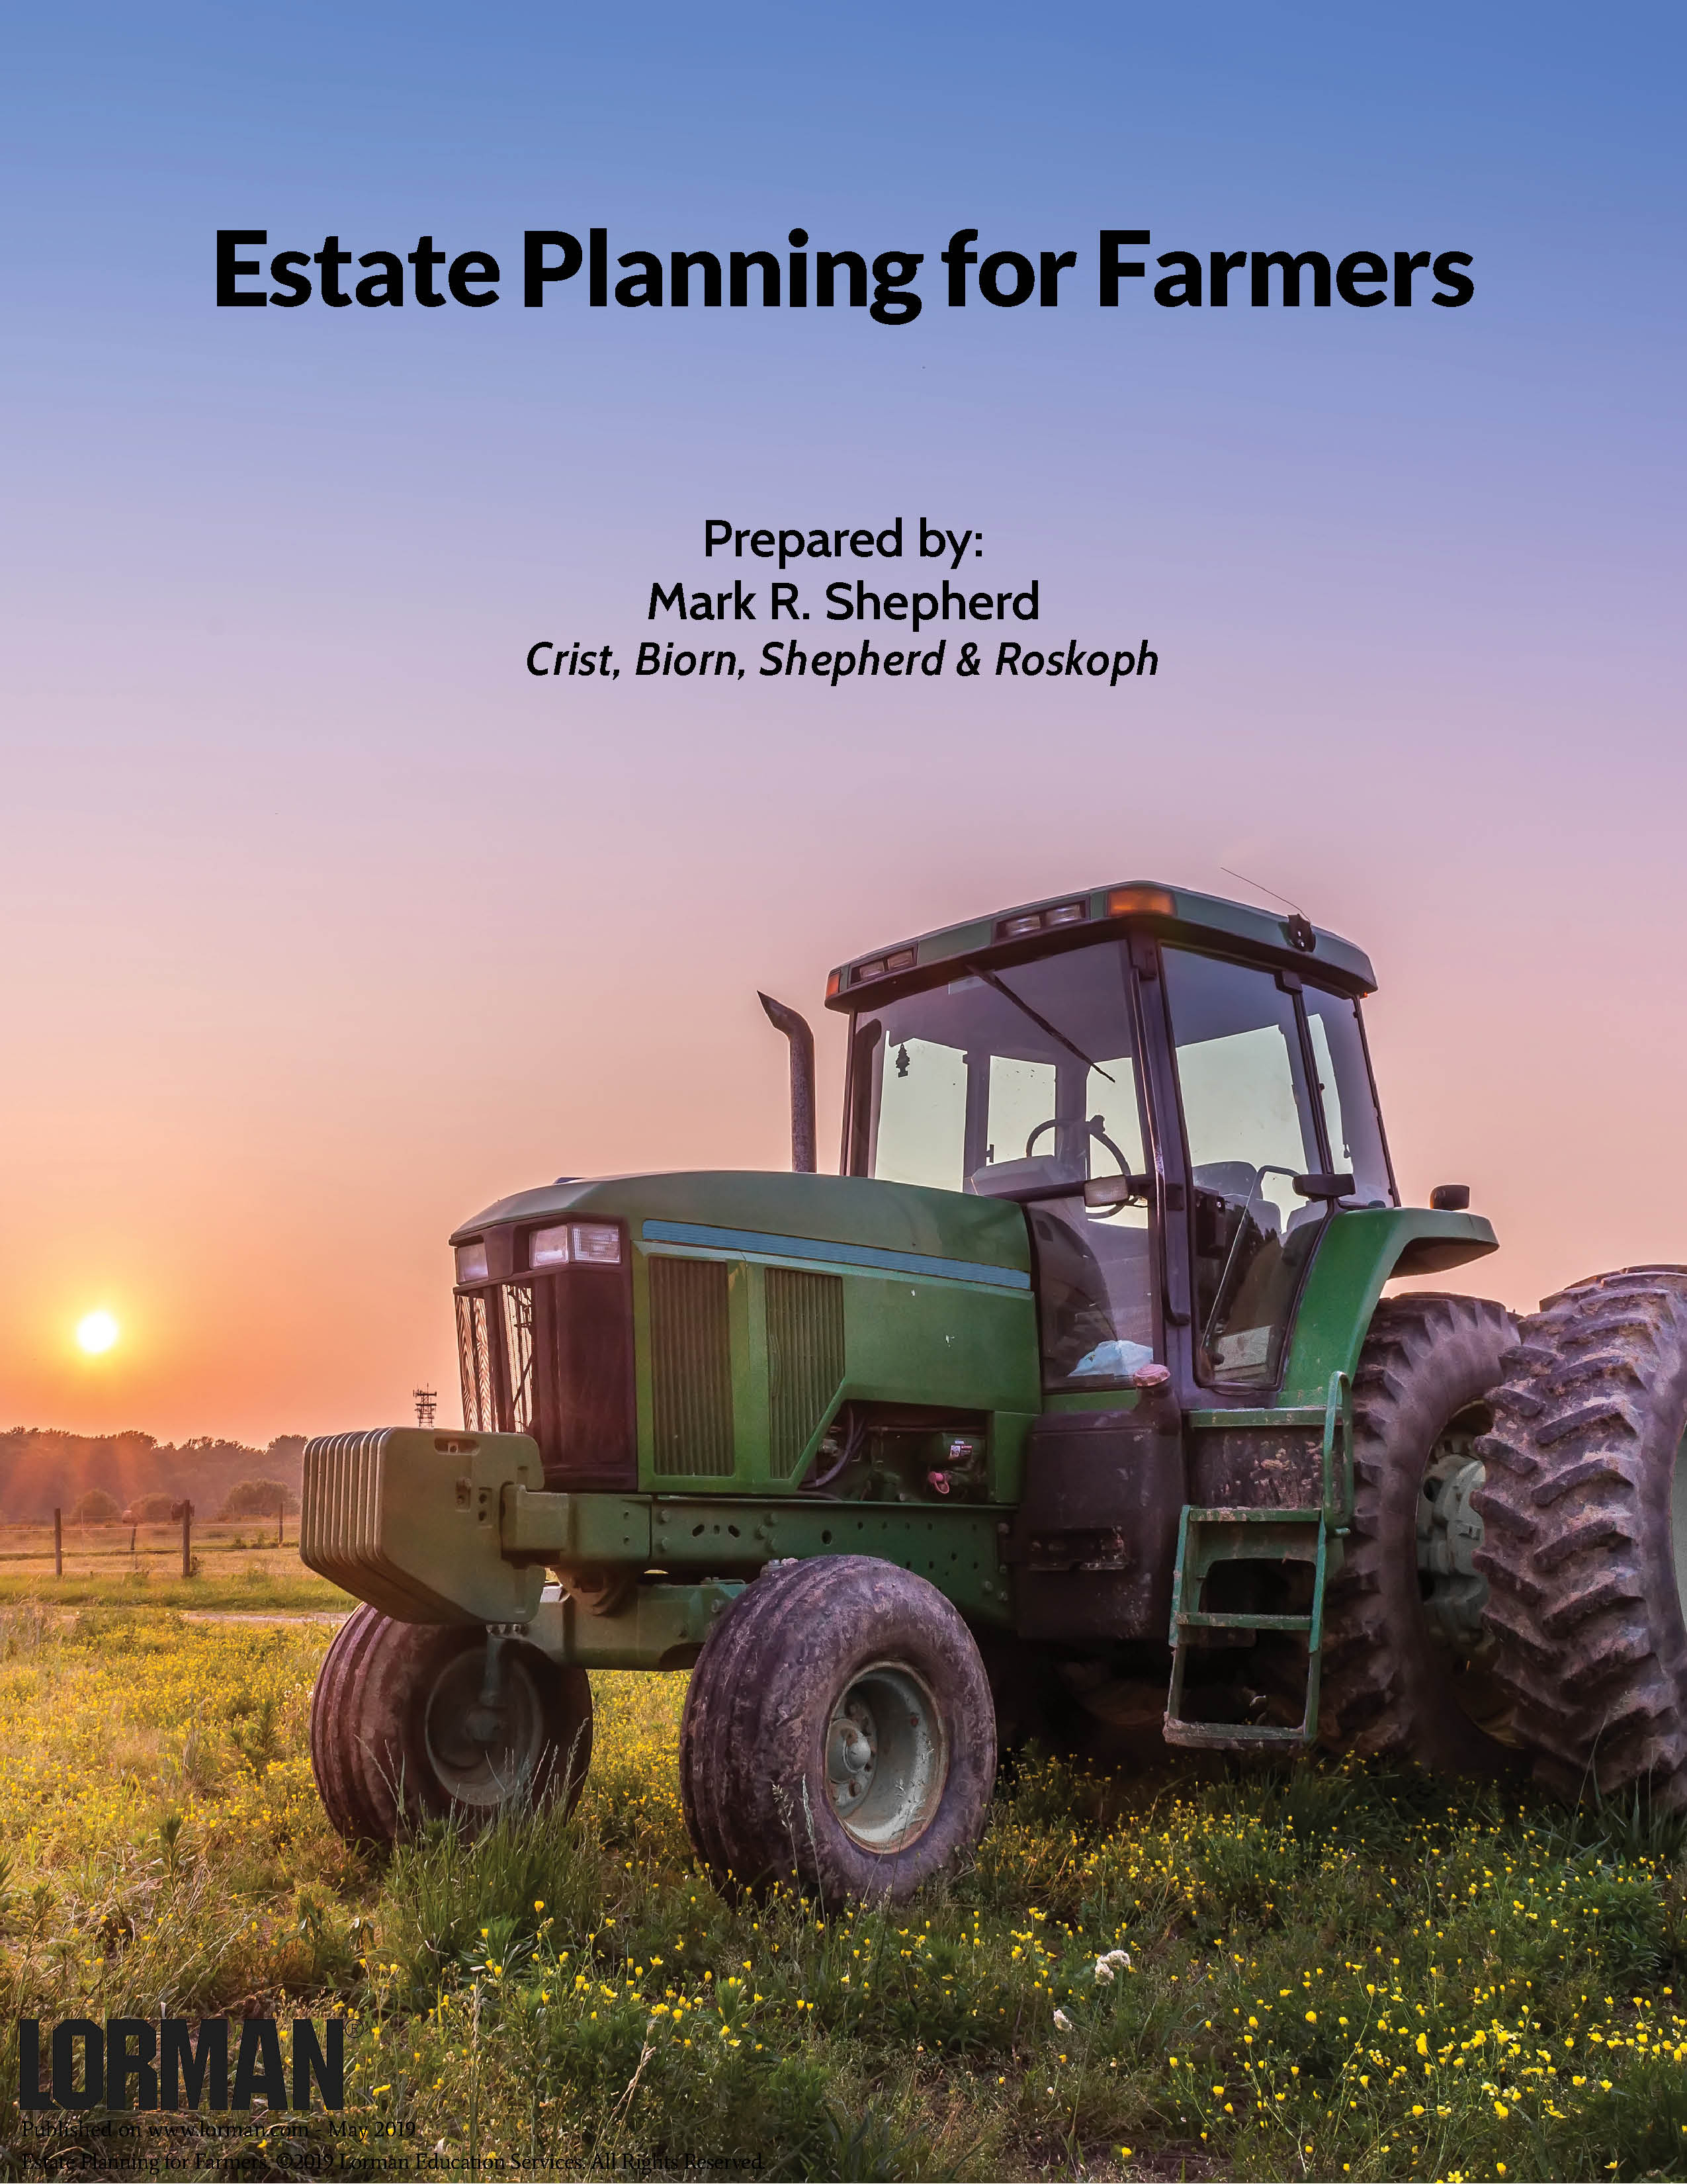 Estate Planning for Farmers